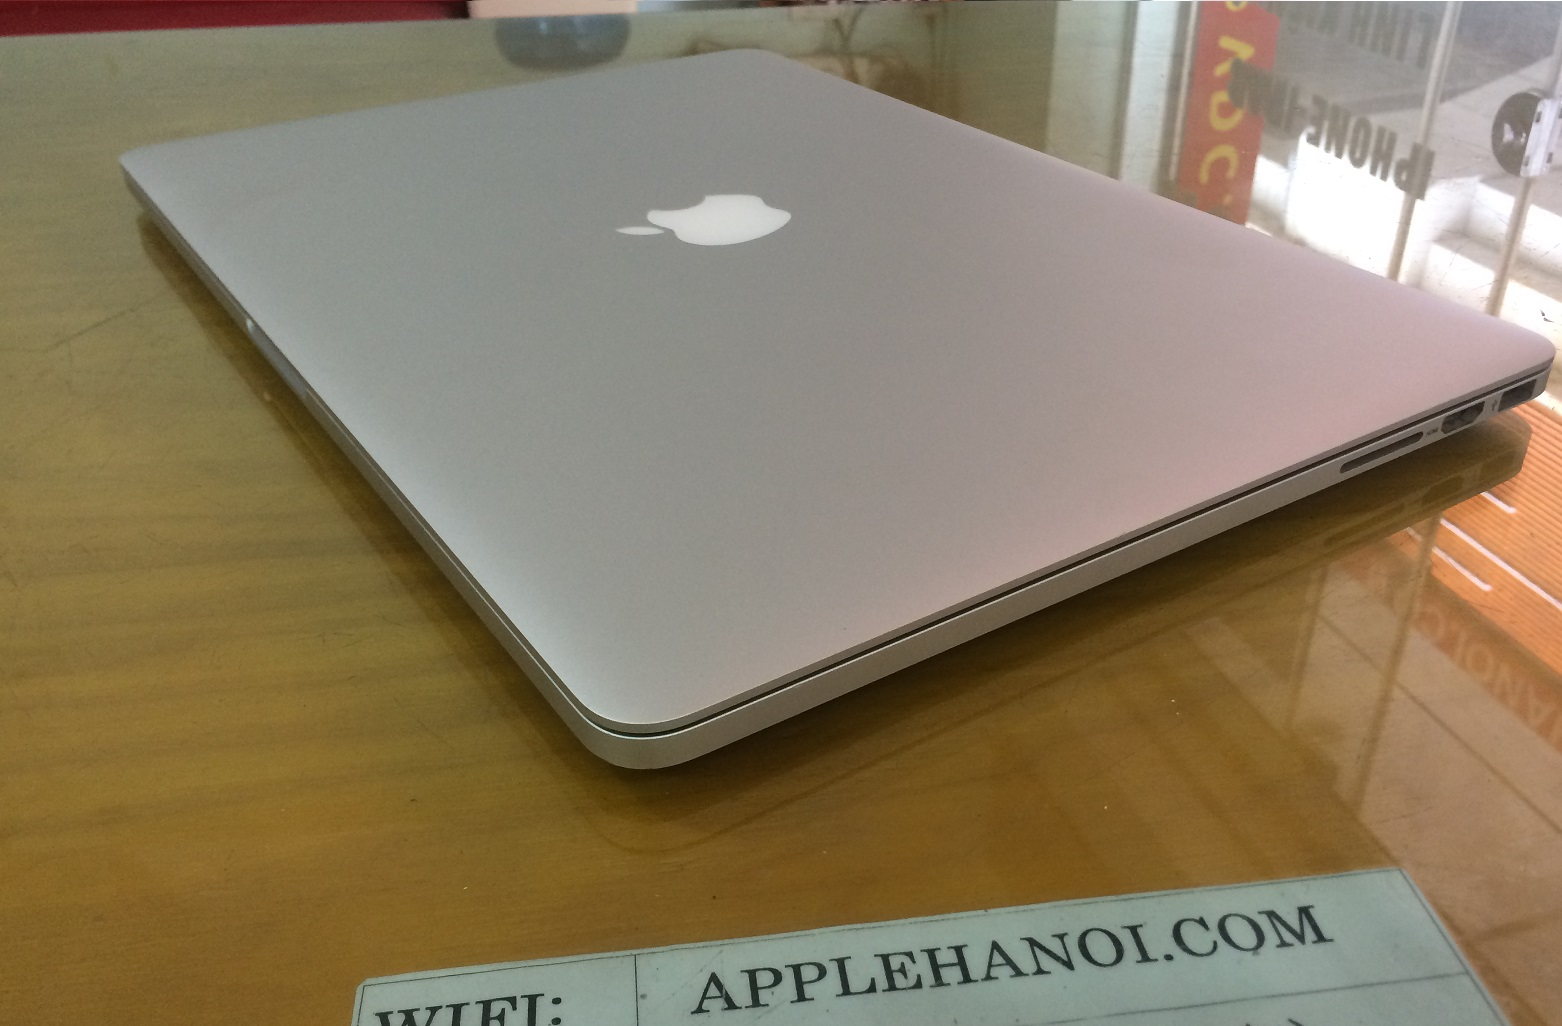 APPLE MACBOOK PRO RETINA MC975 MID 2012 I7